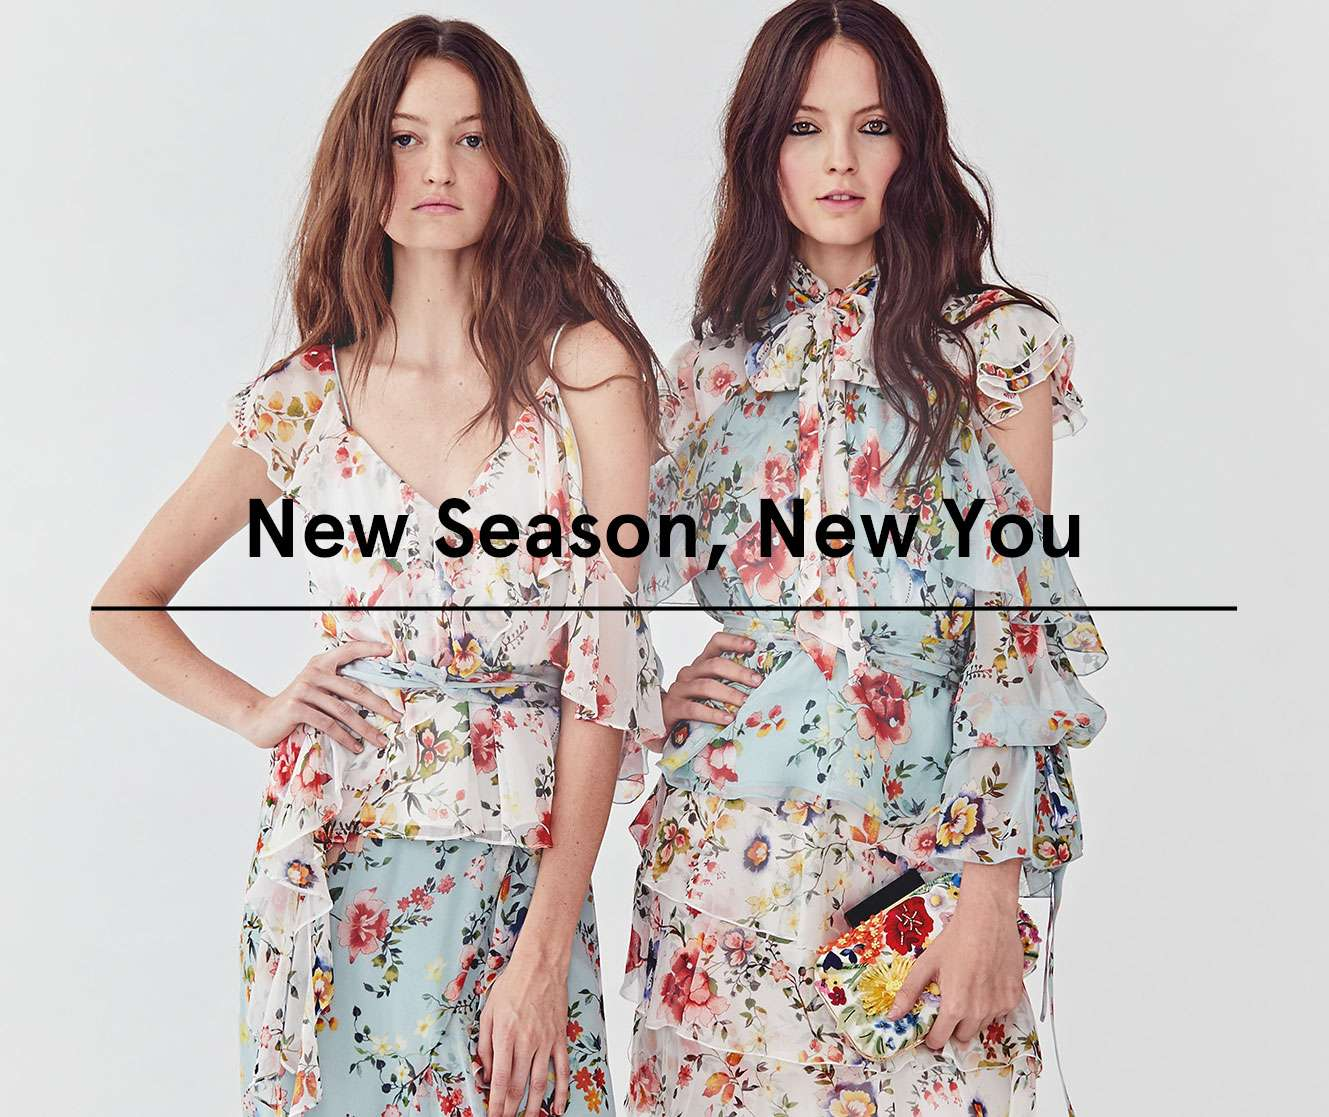 New Season, New You